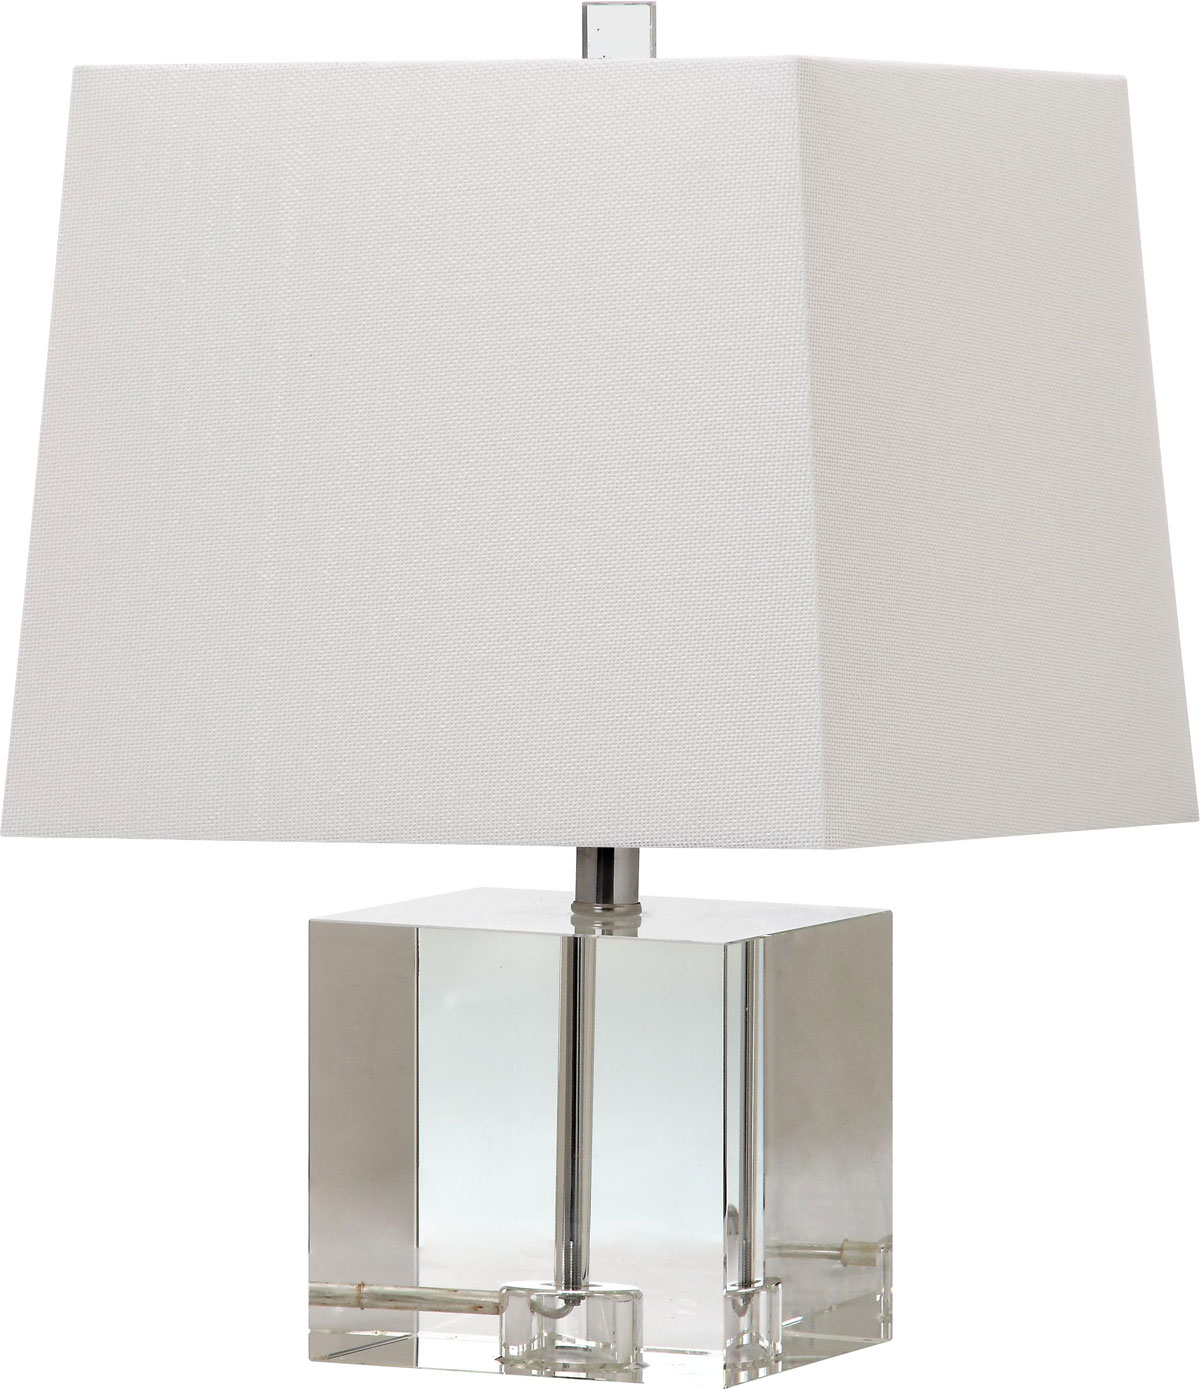 Lit4284a table lamps lighting by safavieh mckinley 19 inch h table lamp lit4284a aloadofball Images